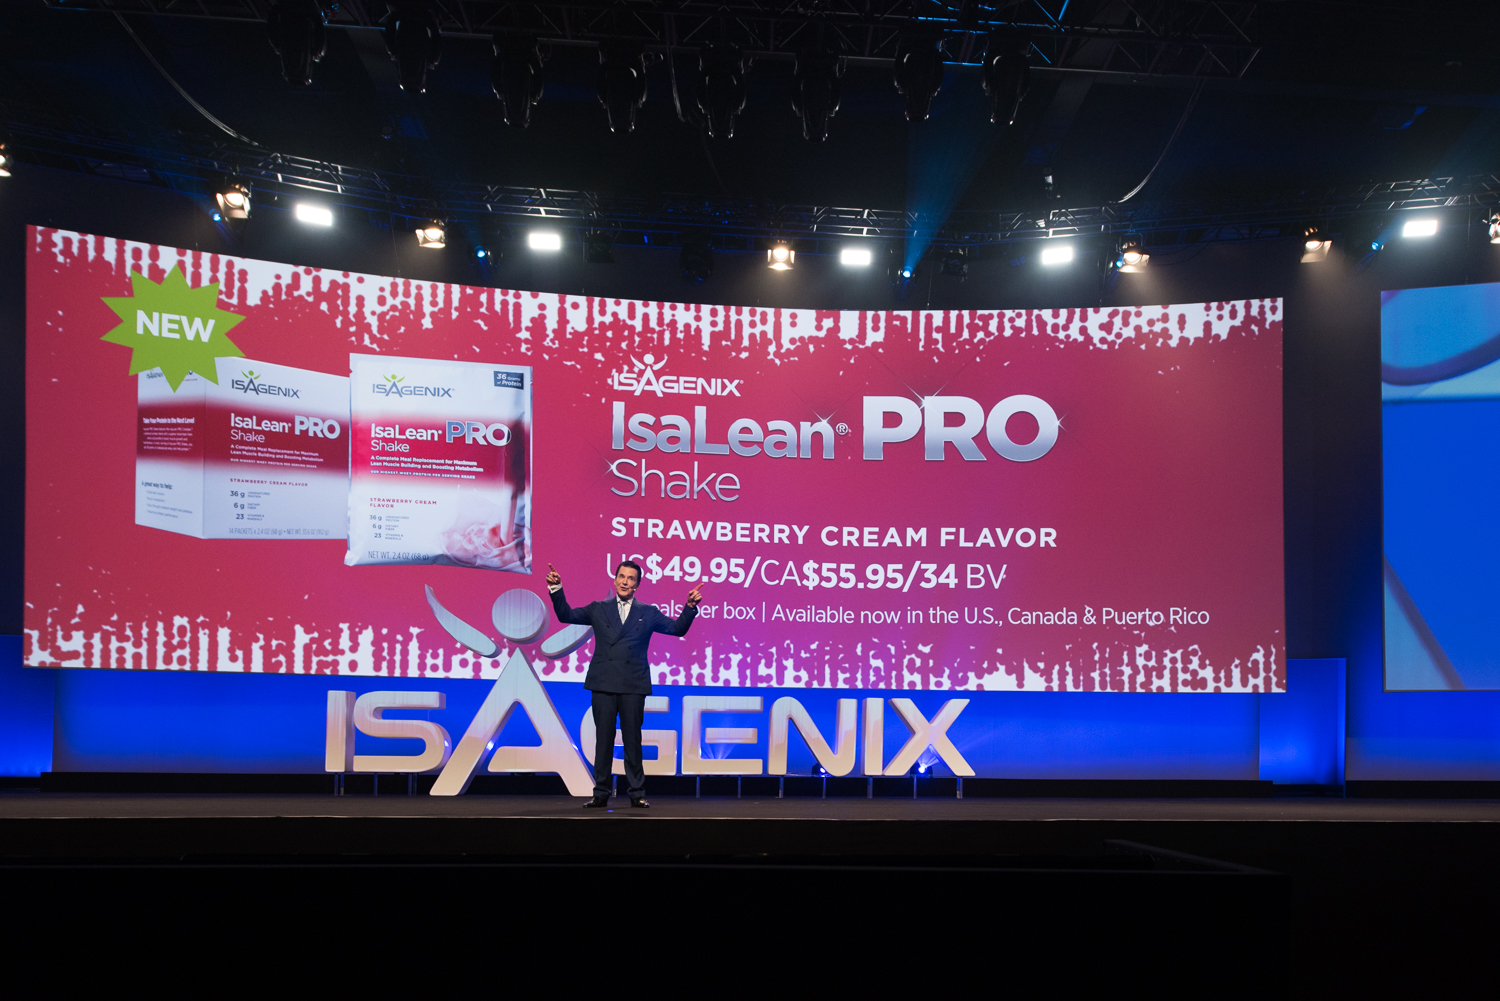 Jim Coover, Co-Founder and Chief Executive Officer, Launches New IsaLean PRO Creamy Strawberry Flavor from Stage at NYKO 2017